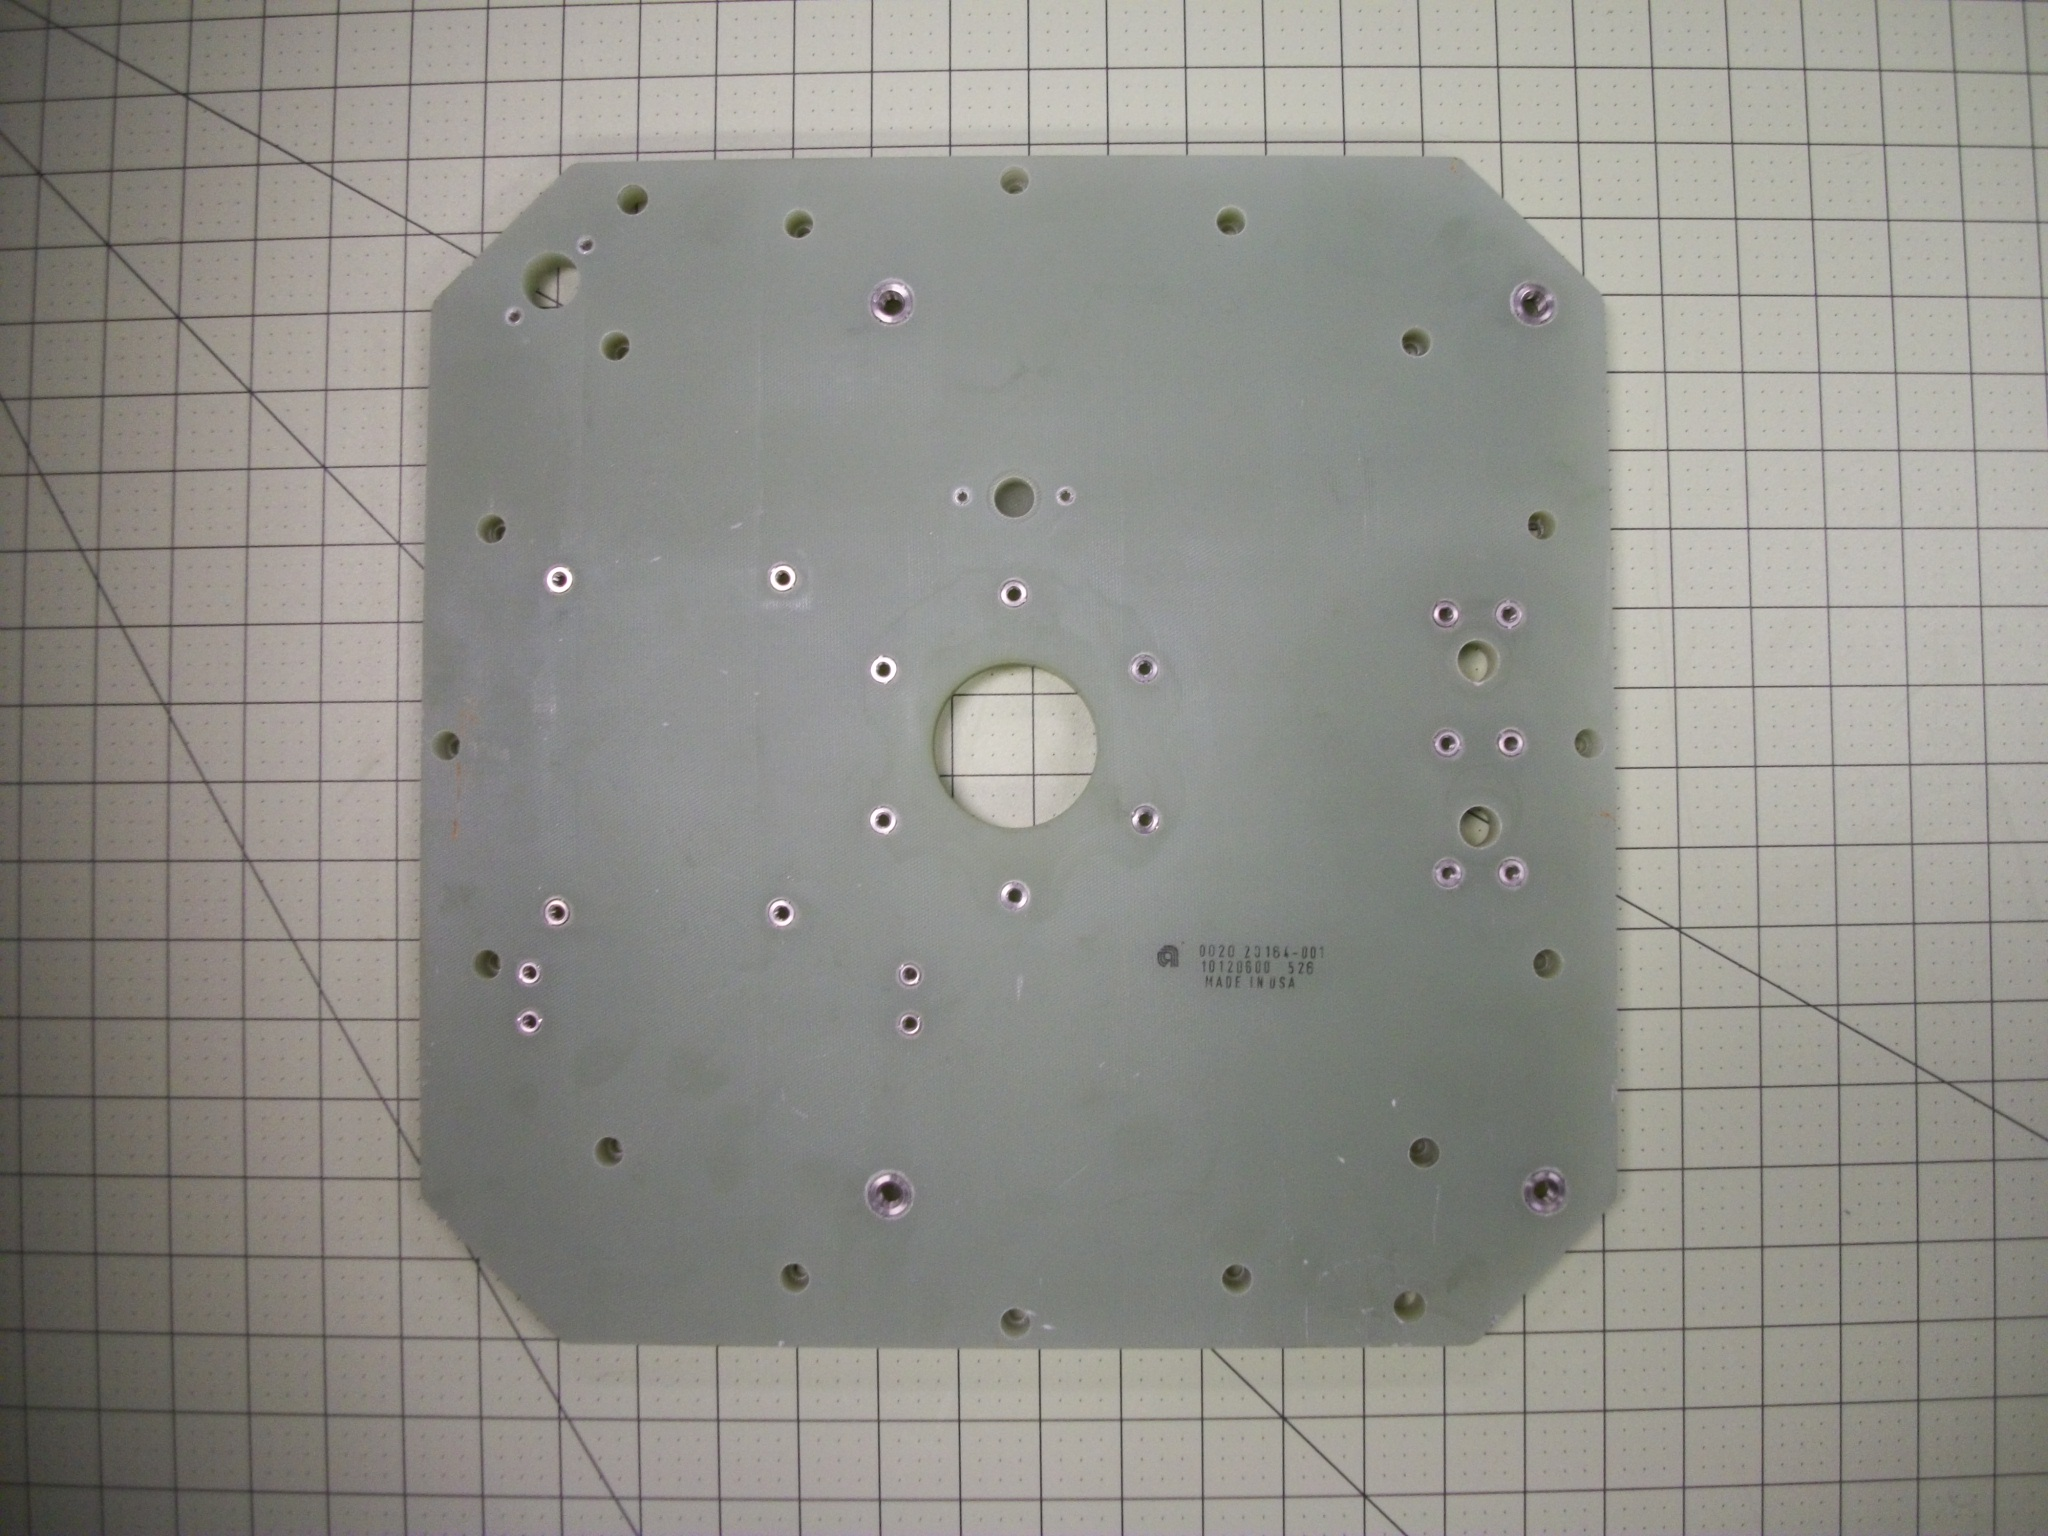 Cover, insulator source 11.30""